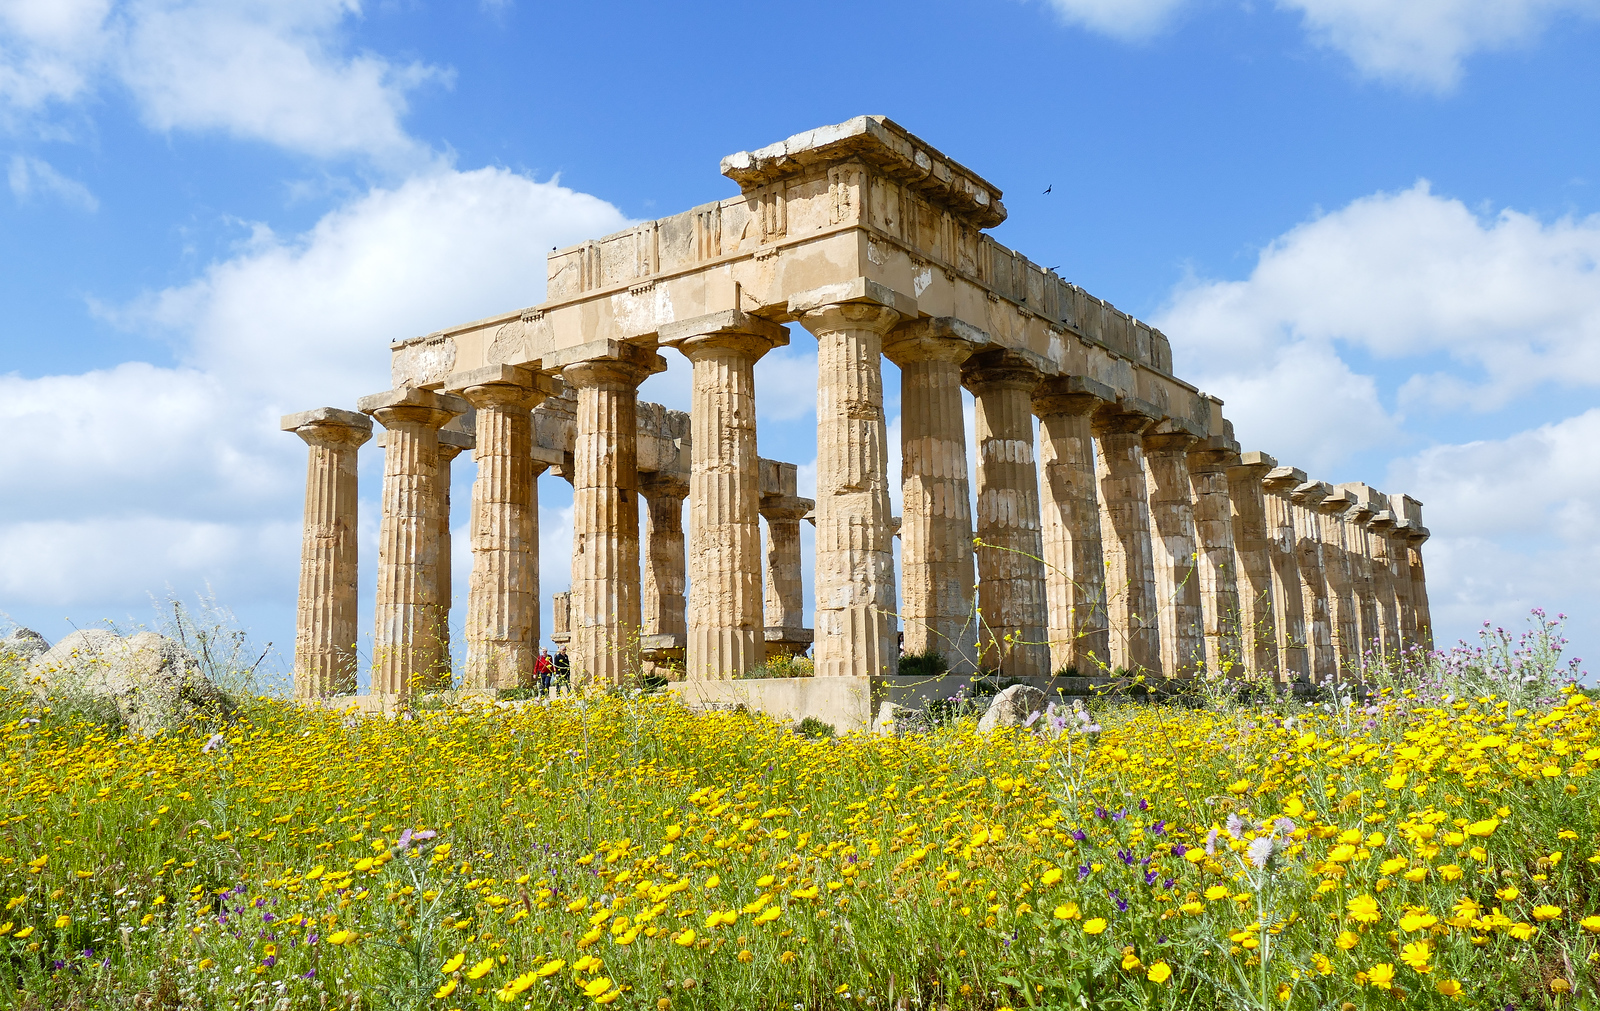 You'll discover the beautiful Temple C on a visit to Selinunte Archaeological Park on the west coast of Sicily. Explore it on a cruise excursion from Trapani.